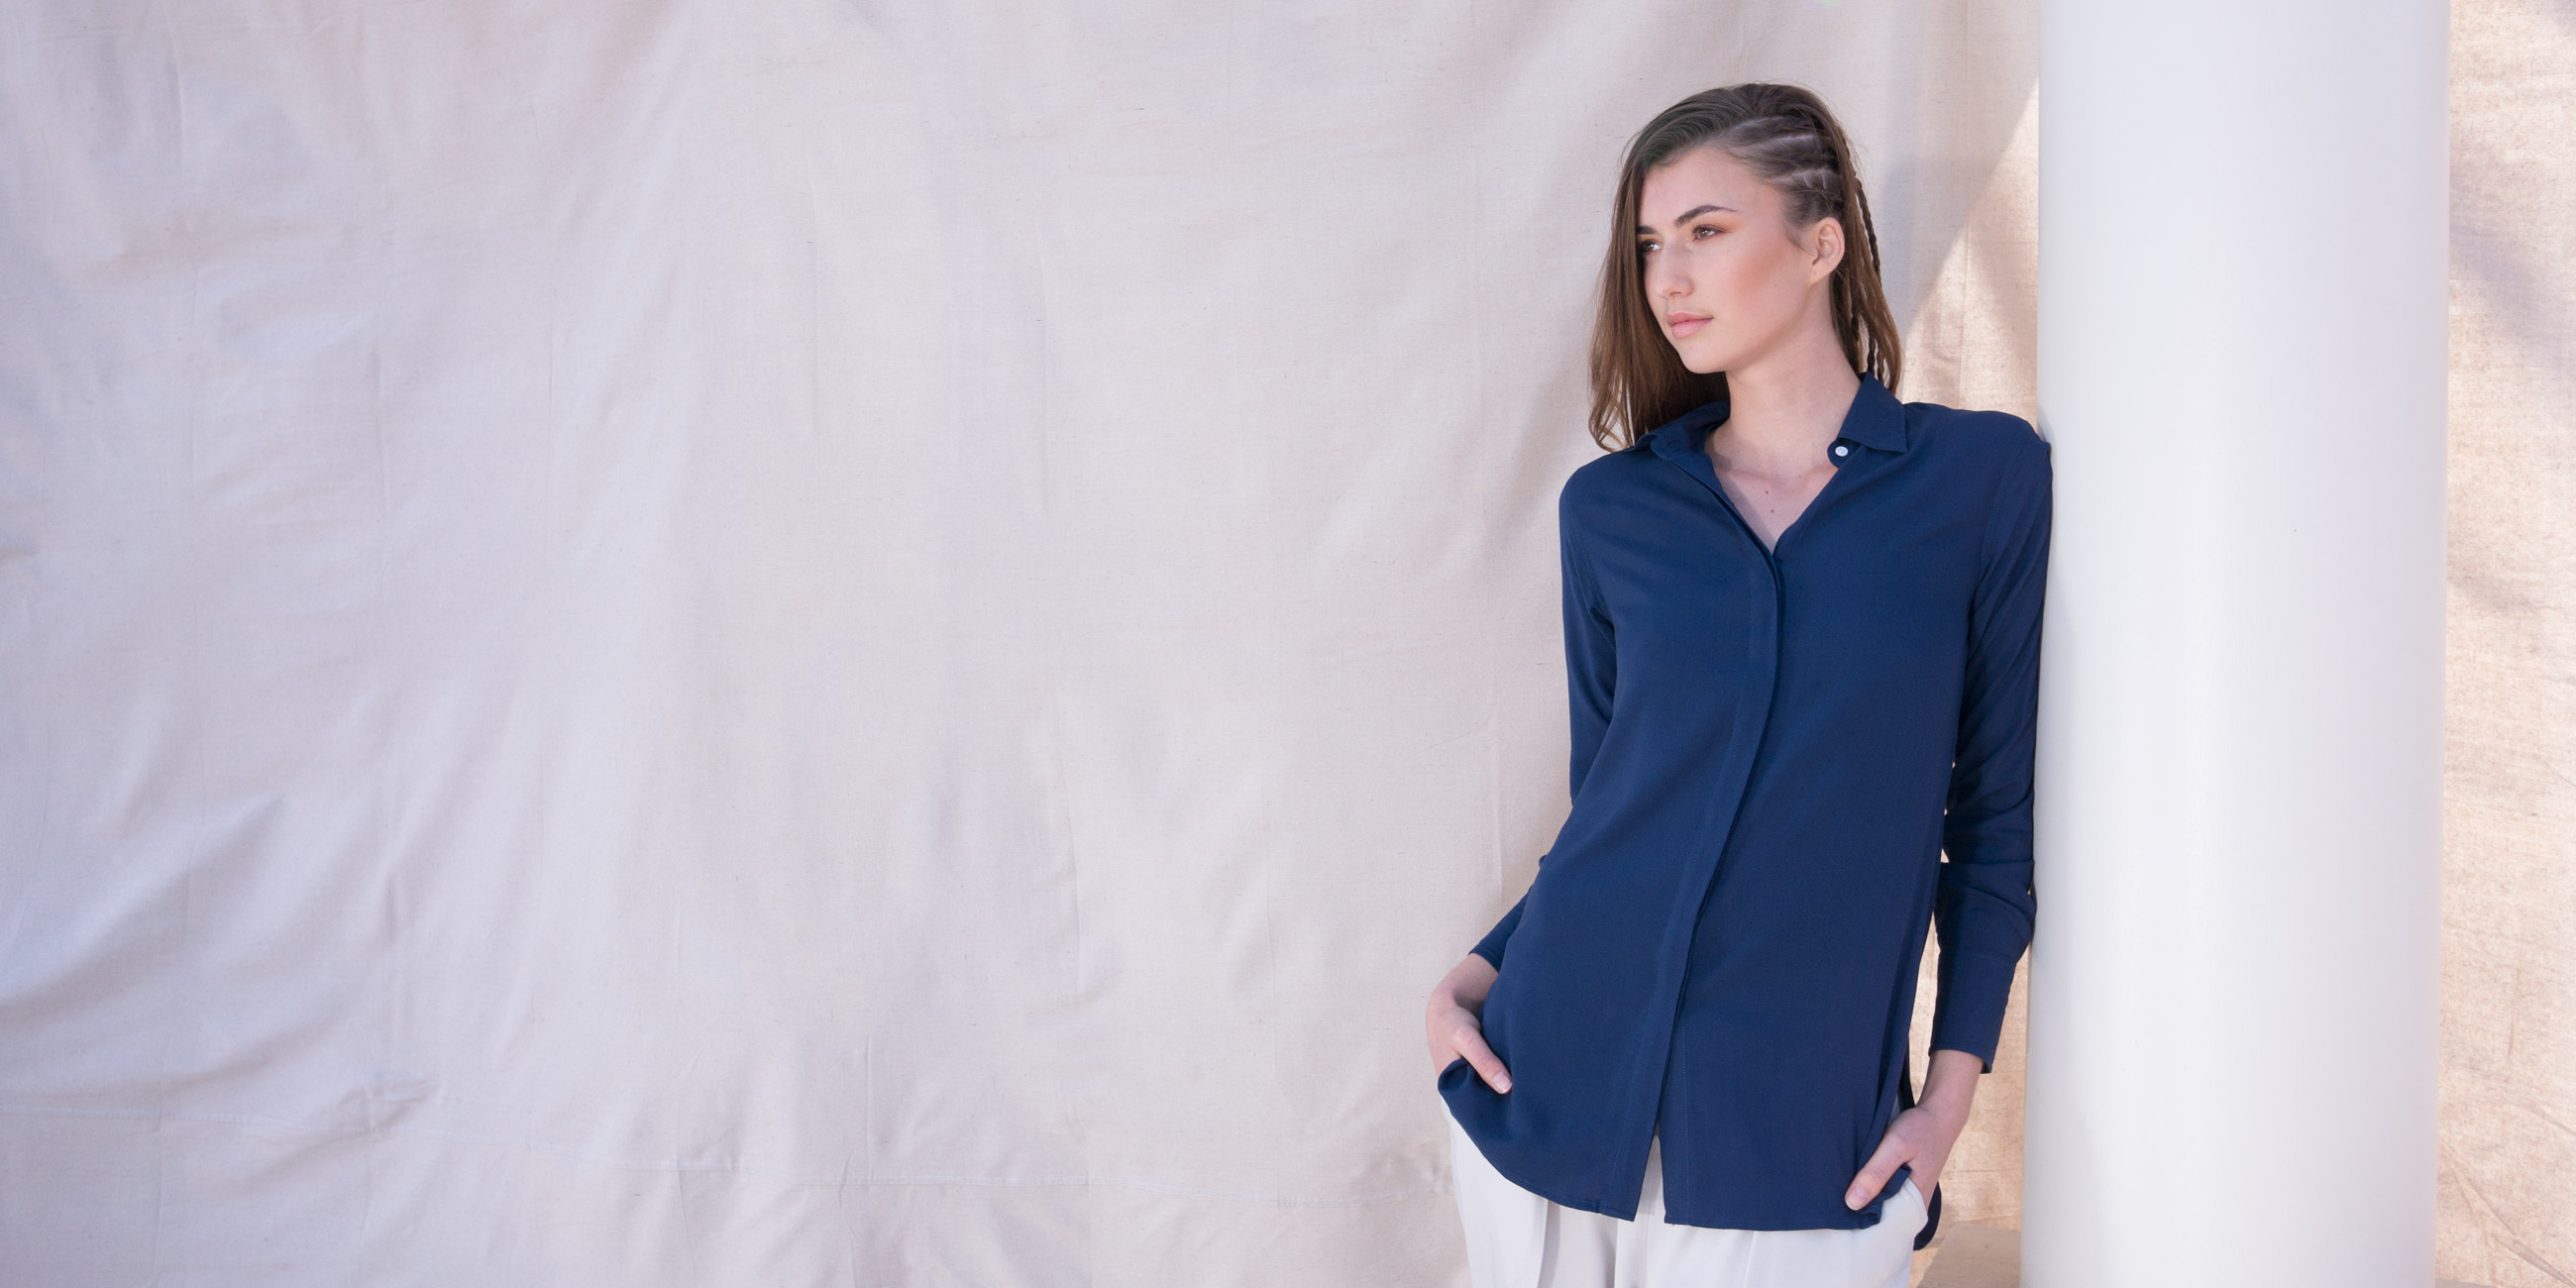 Bamboo Material Eco Friendly Fashion Blue Shirt